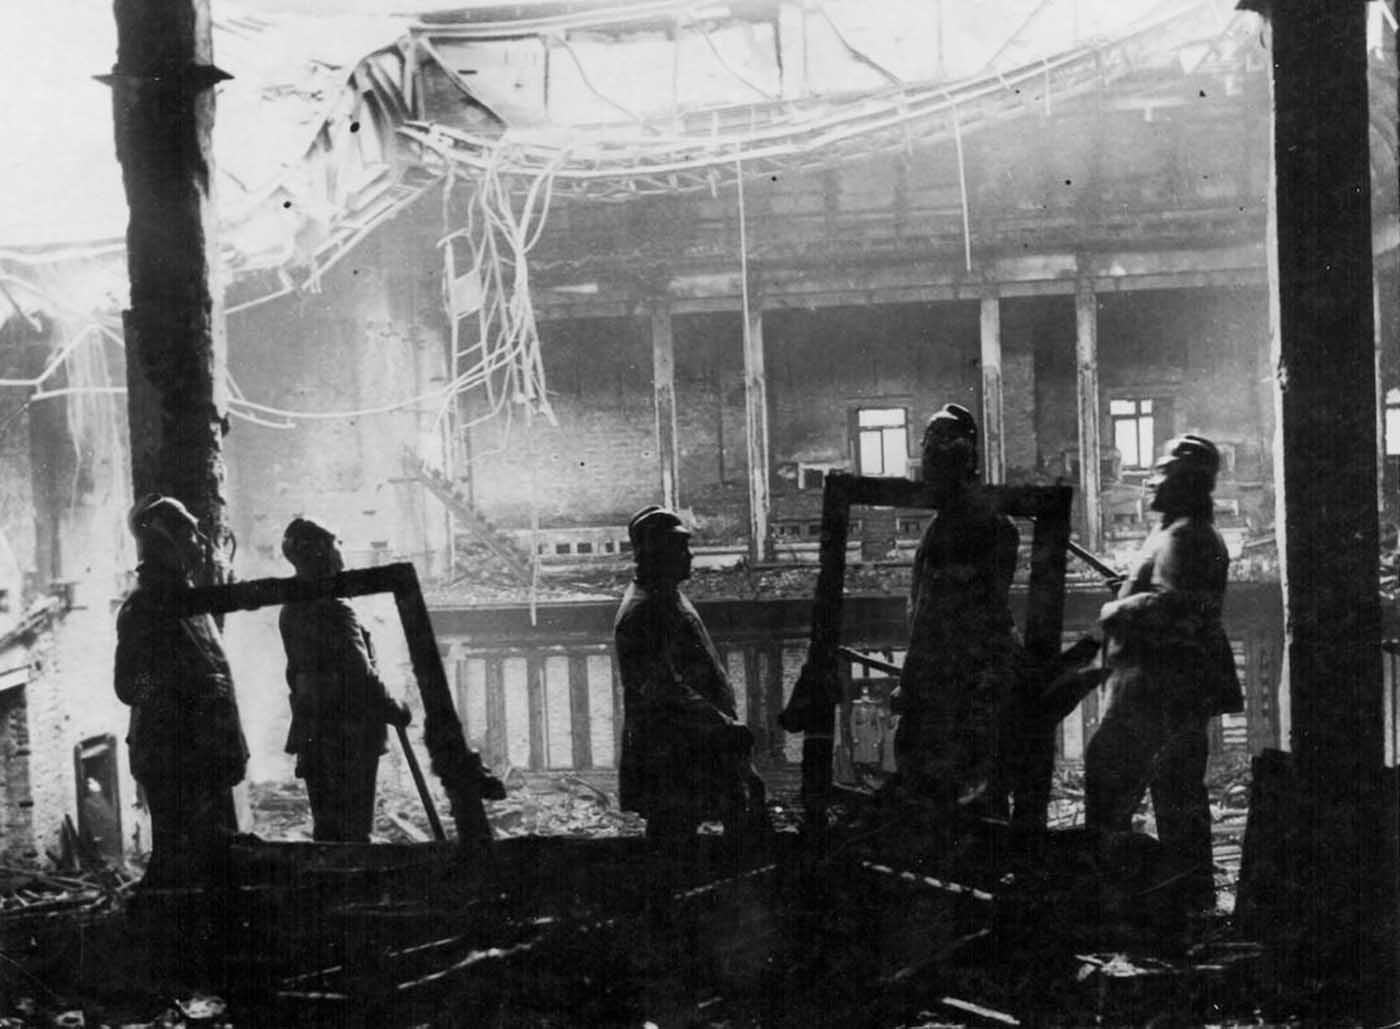 Firemen surveying the ruins following the Reichstag fire.